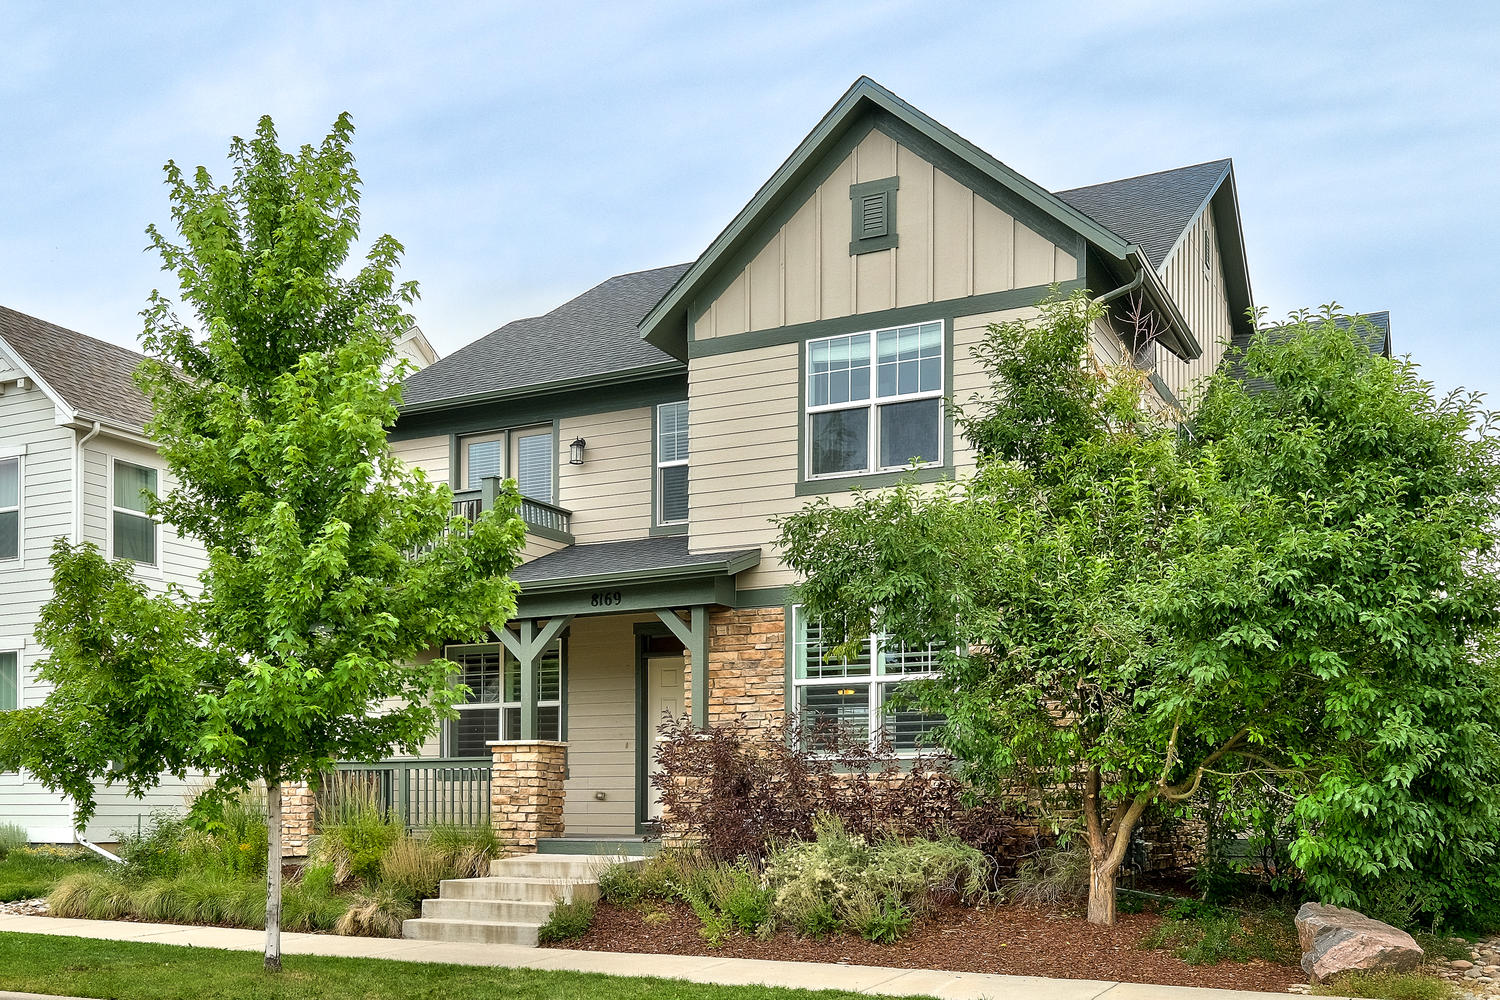 """Single Family Home for Sale at Meticulously maintained McStain """"Willow"""" model home in the heart of Stapleton 8169 East 23rd Avenue Stapleton, Denver, Colorado, 80238 United States"""